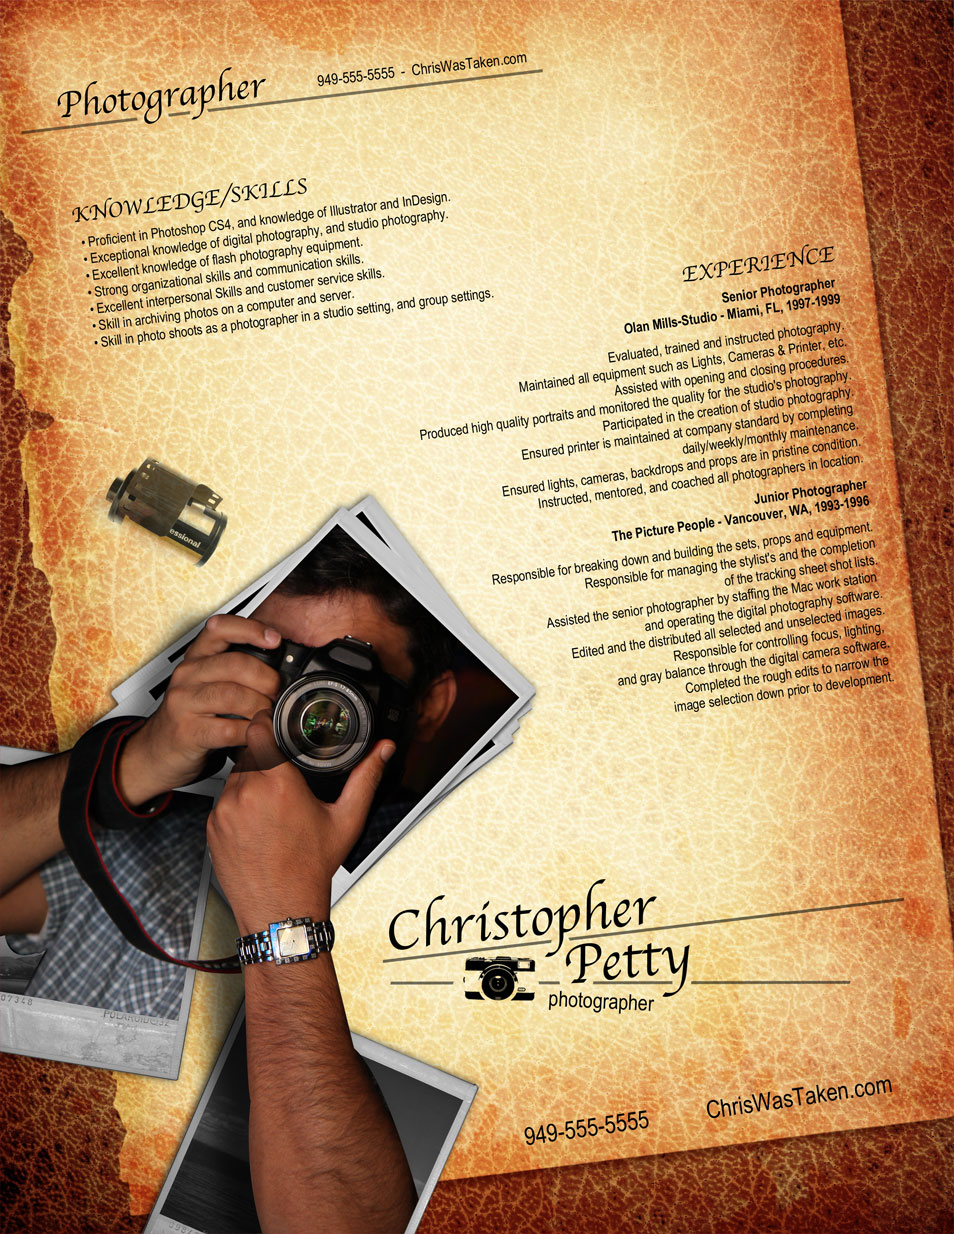 Opposenewapstandardsus  Terrific  Creative Cvresume Design Inspiration With Magnificent Resume Photographer With Enchanting Engineering Resume Tips Also Perfect Resume Sample In Addition Build My Resume Online Free And Physical Therapy Assistant Resume As Well As Regional Sales Manager Resume Additionally What Is A Combination Resume From Cssauthorcom With Opposenewapstandardsus  Magnificent  Creative Cvresume Design Inspiration With Enchanting Resume Photographer And Terrific Engineering Resume Tips Also Perfect Resume Sample In Addition Build My Resume Online Free From Cssauthorcom